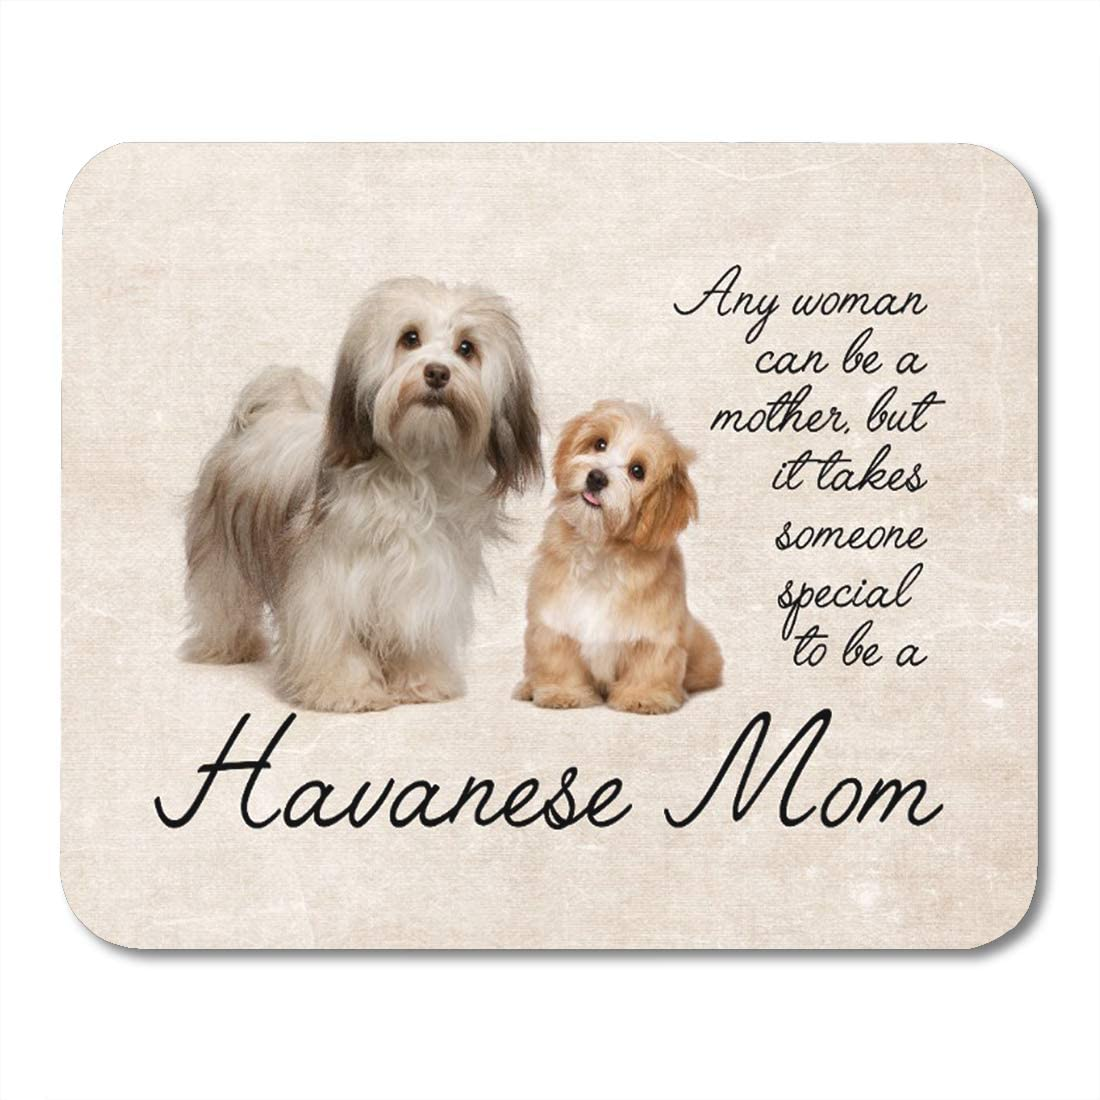 Aikul Mouse Pads Dog Havanese Mom Pet Animal Mother Puppy Mouse Mat 9.5 x7.9 Mouse Pad Suitable for Notebook Desktop Computers Office Accessories